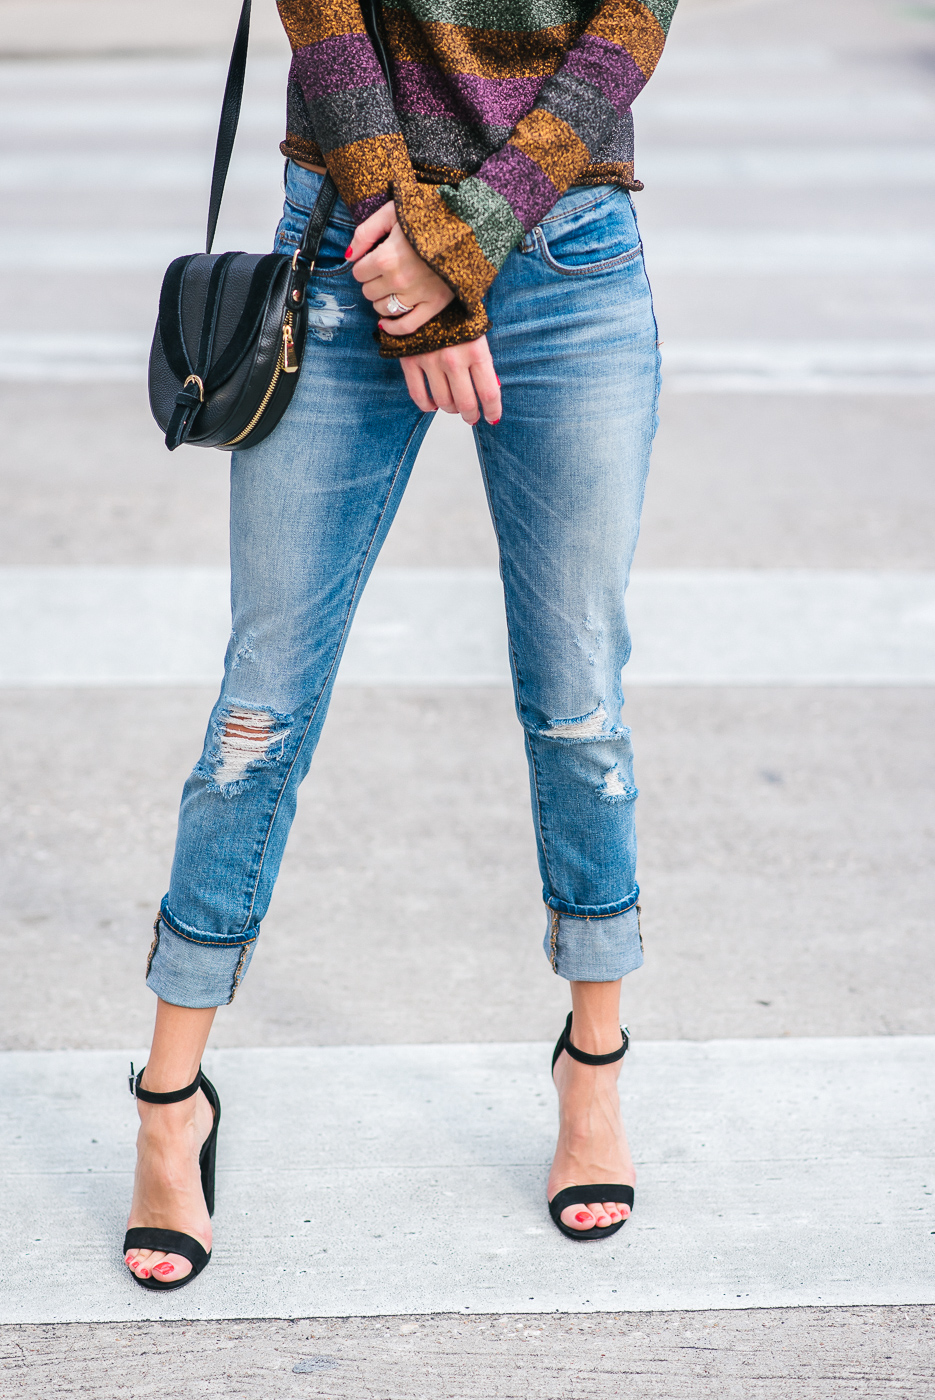 Street style blogger in distressed denim